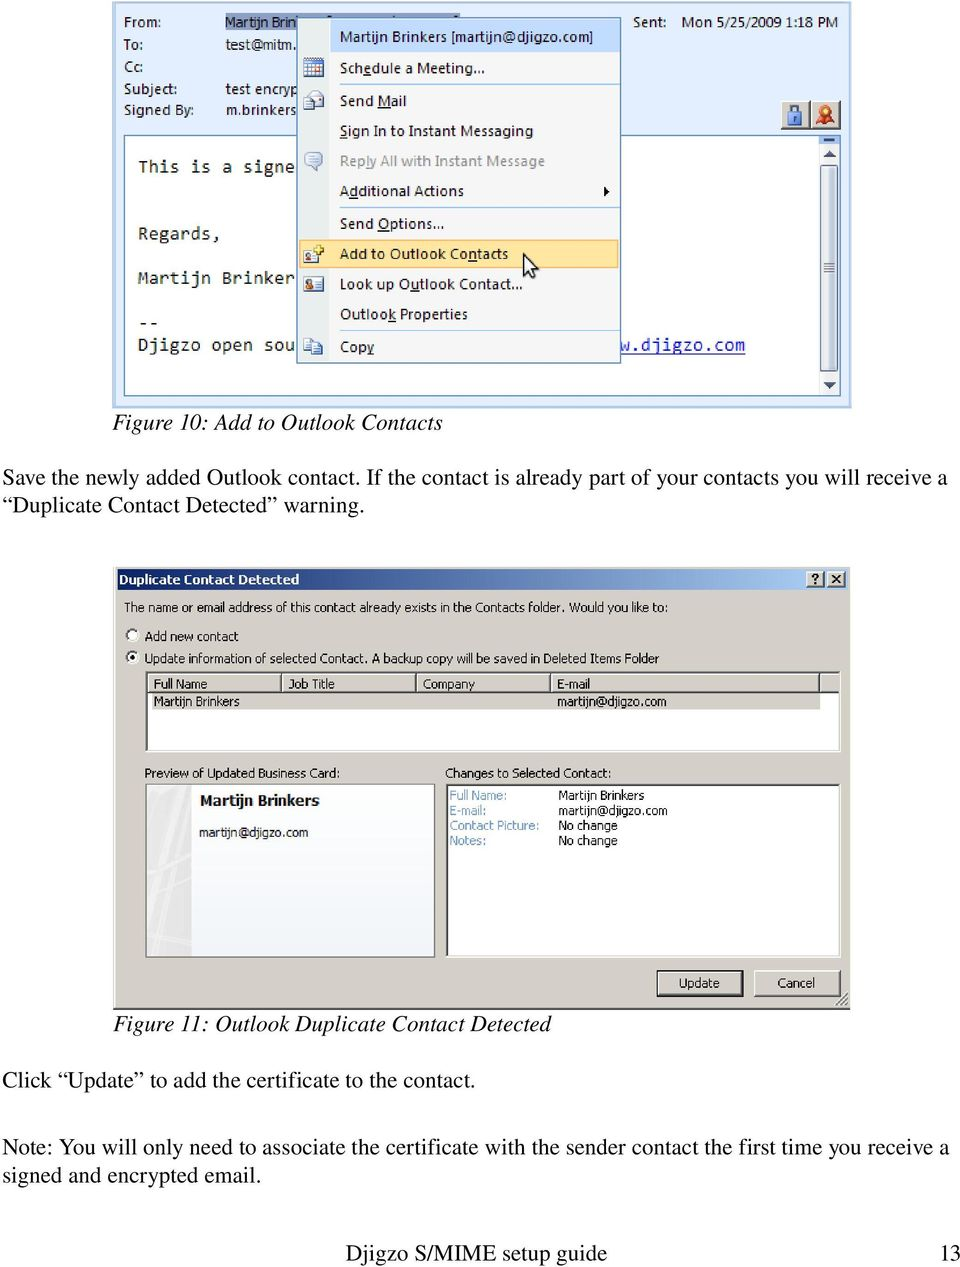 Figure 11: Outlook Duplicate Contact Detected Click Update to add the certificate to the contact.